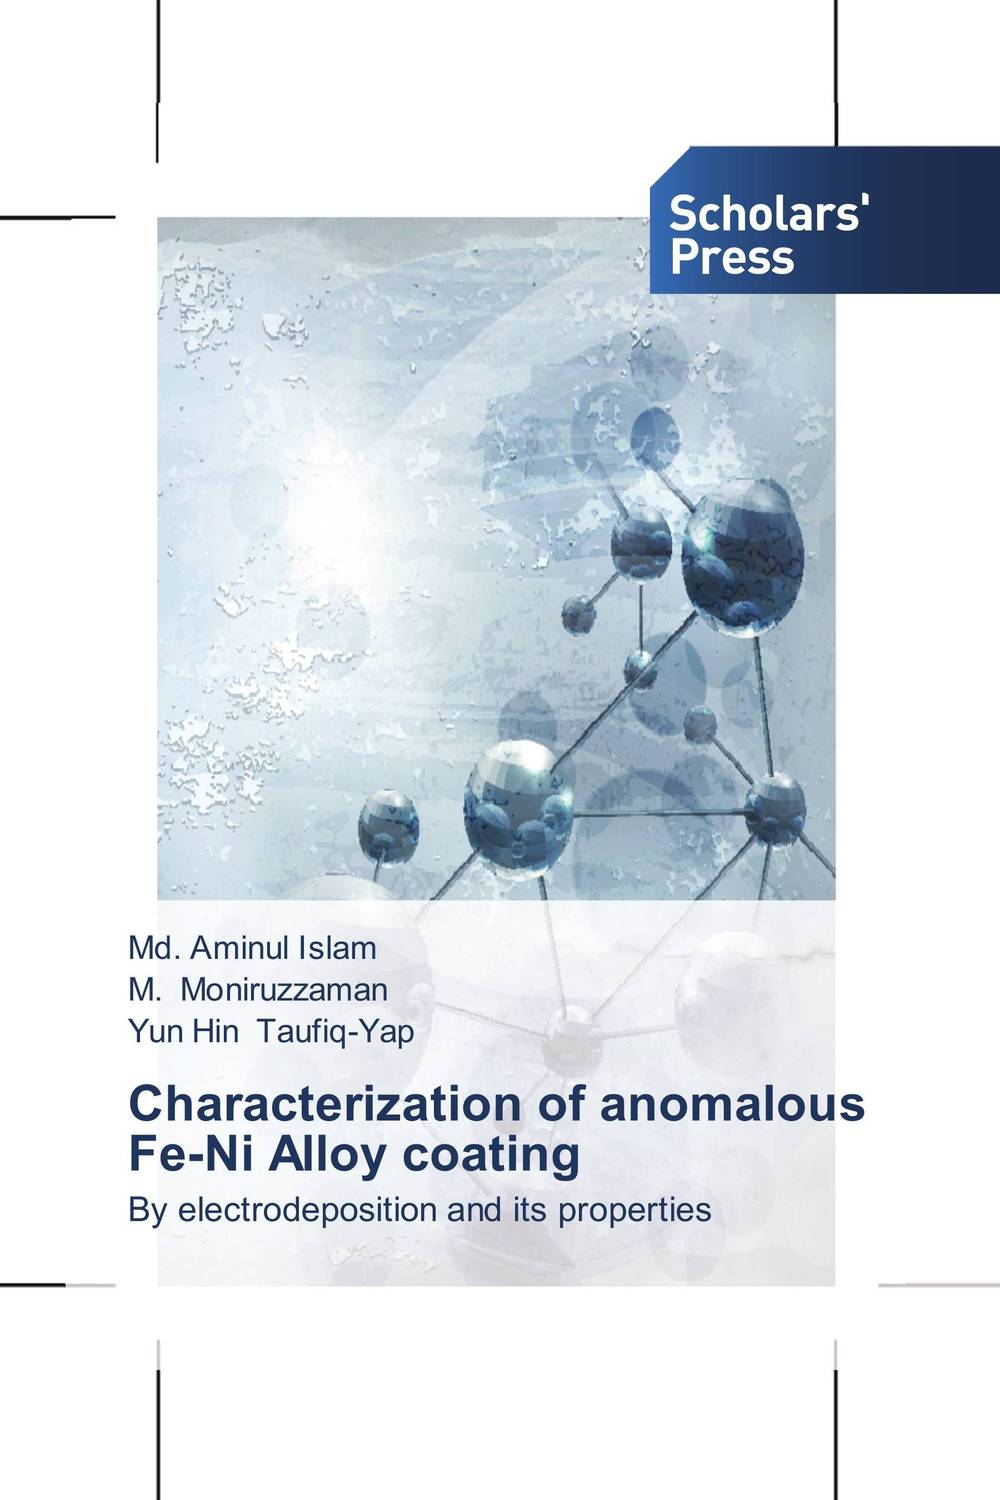 Characterization of anomalous Fe-Ni Alloy coating emote alloy